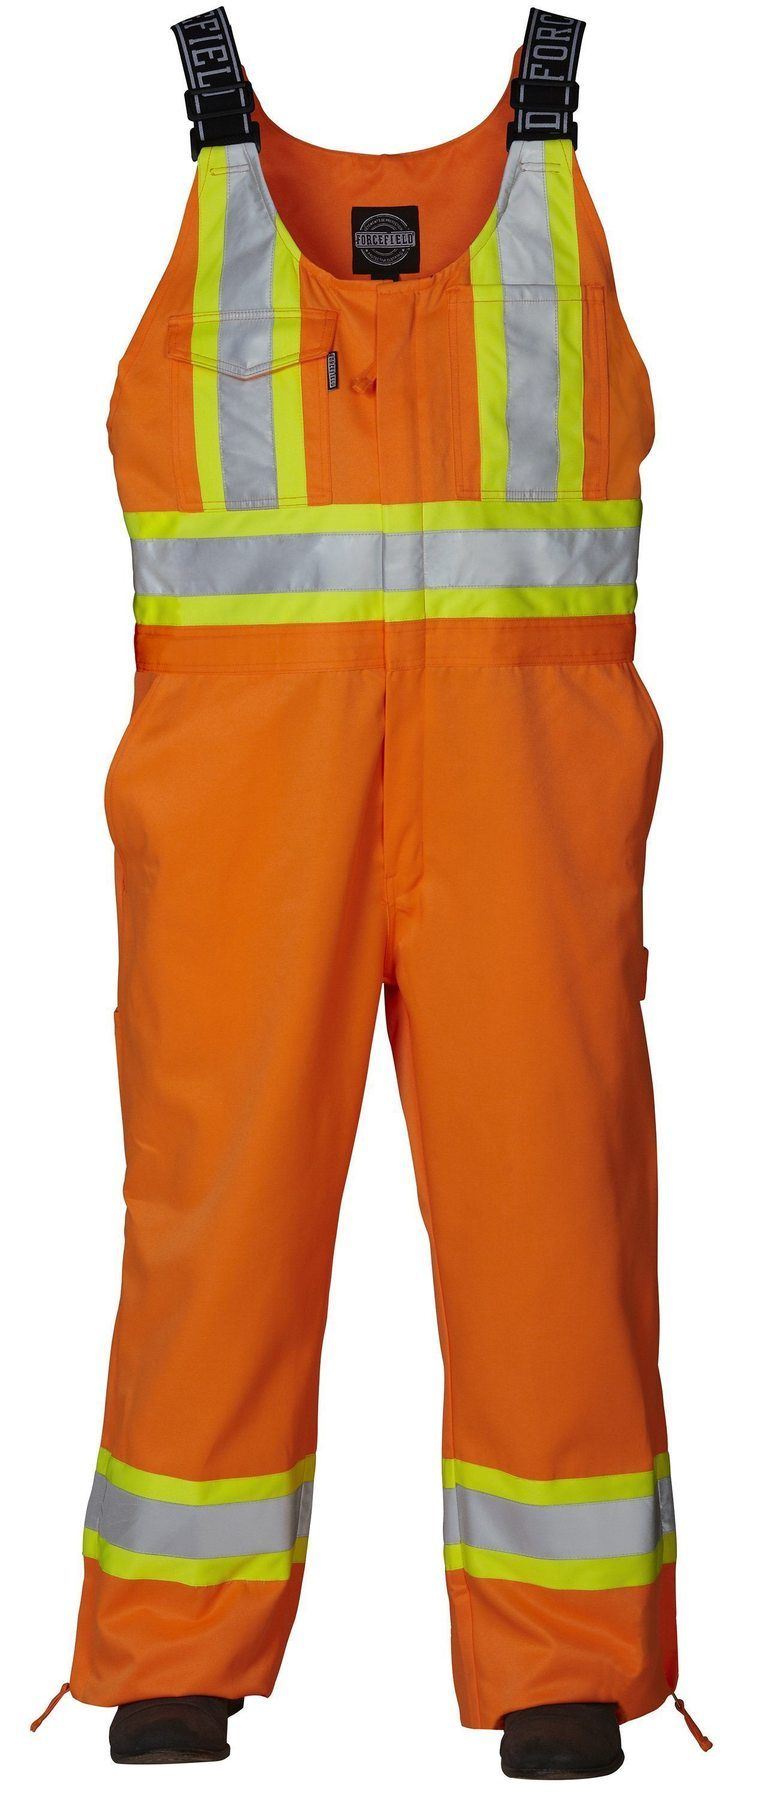 Forcefield - Safety Unlined Bib Overall - 024-OR141 - Orange - front